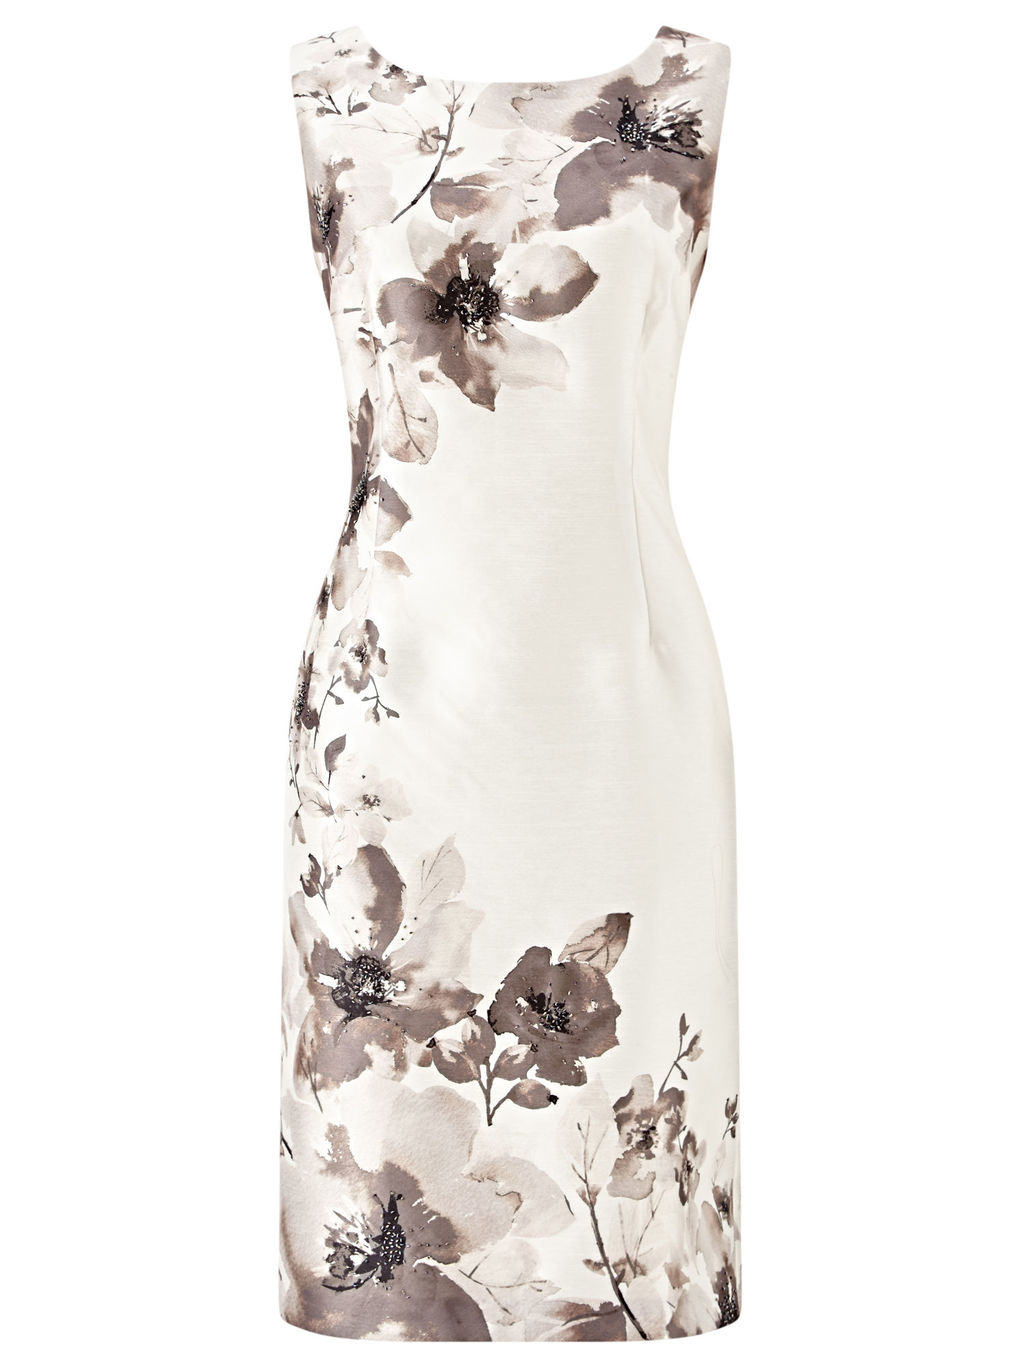 Flower Placement Dress, Cream/Multi - style: shift; neckline: round neck; fit: tailored/fitted; sleeve style: sleeveless; predominant colour: ivory/cream; secondary colour: mid grey; length: on the knee; fibres: polyester/polyamide - 100%; occasions: occasion; sleeve length: sleeveless; trends: monochrome; texture group: structured shiny - satin/tafetta/silk etc.; pattern type: fabric; pattern size: standard; pattern: florals; season: s/s 2016